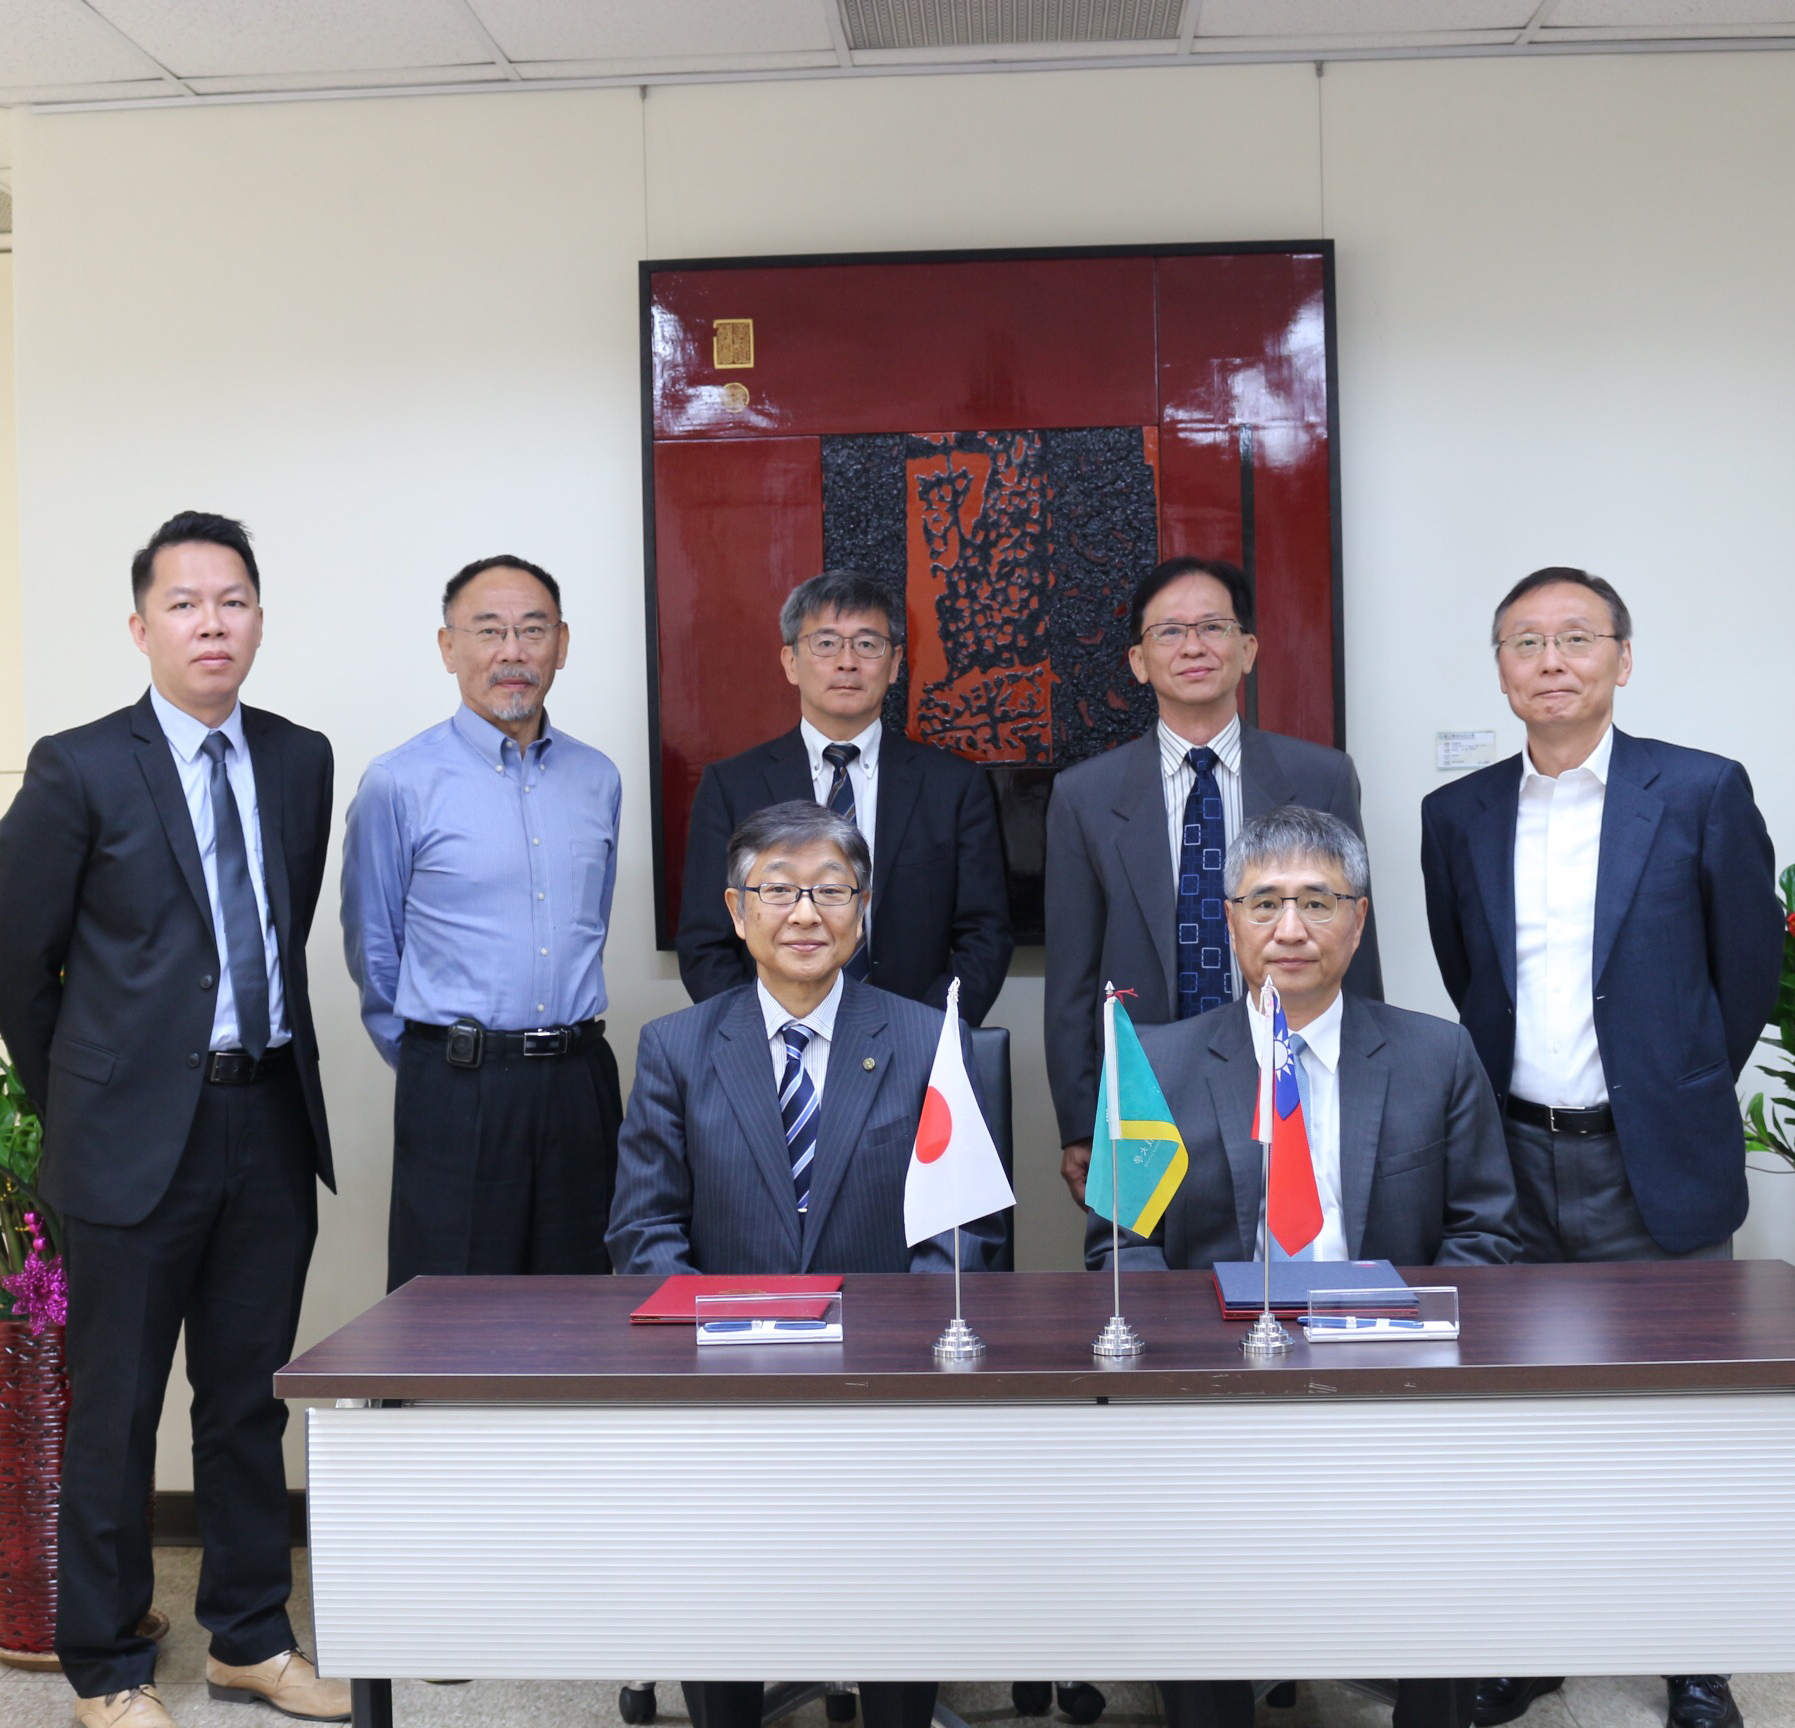 RDMM Promotion Center of KRI signed up MOU with National Yunlin University of Science and Technology in Taiwan